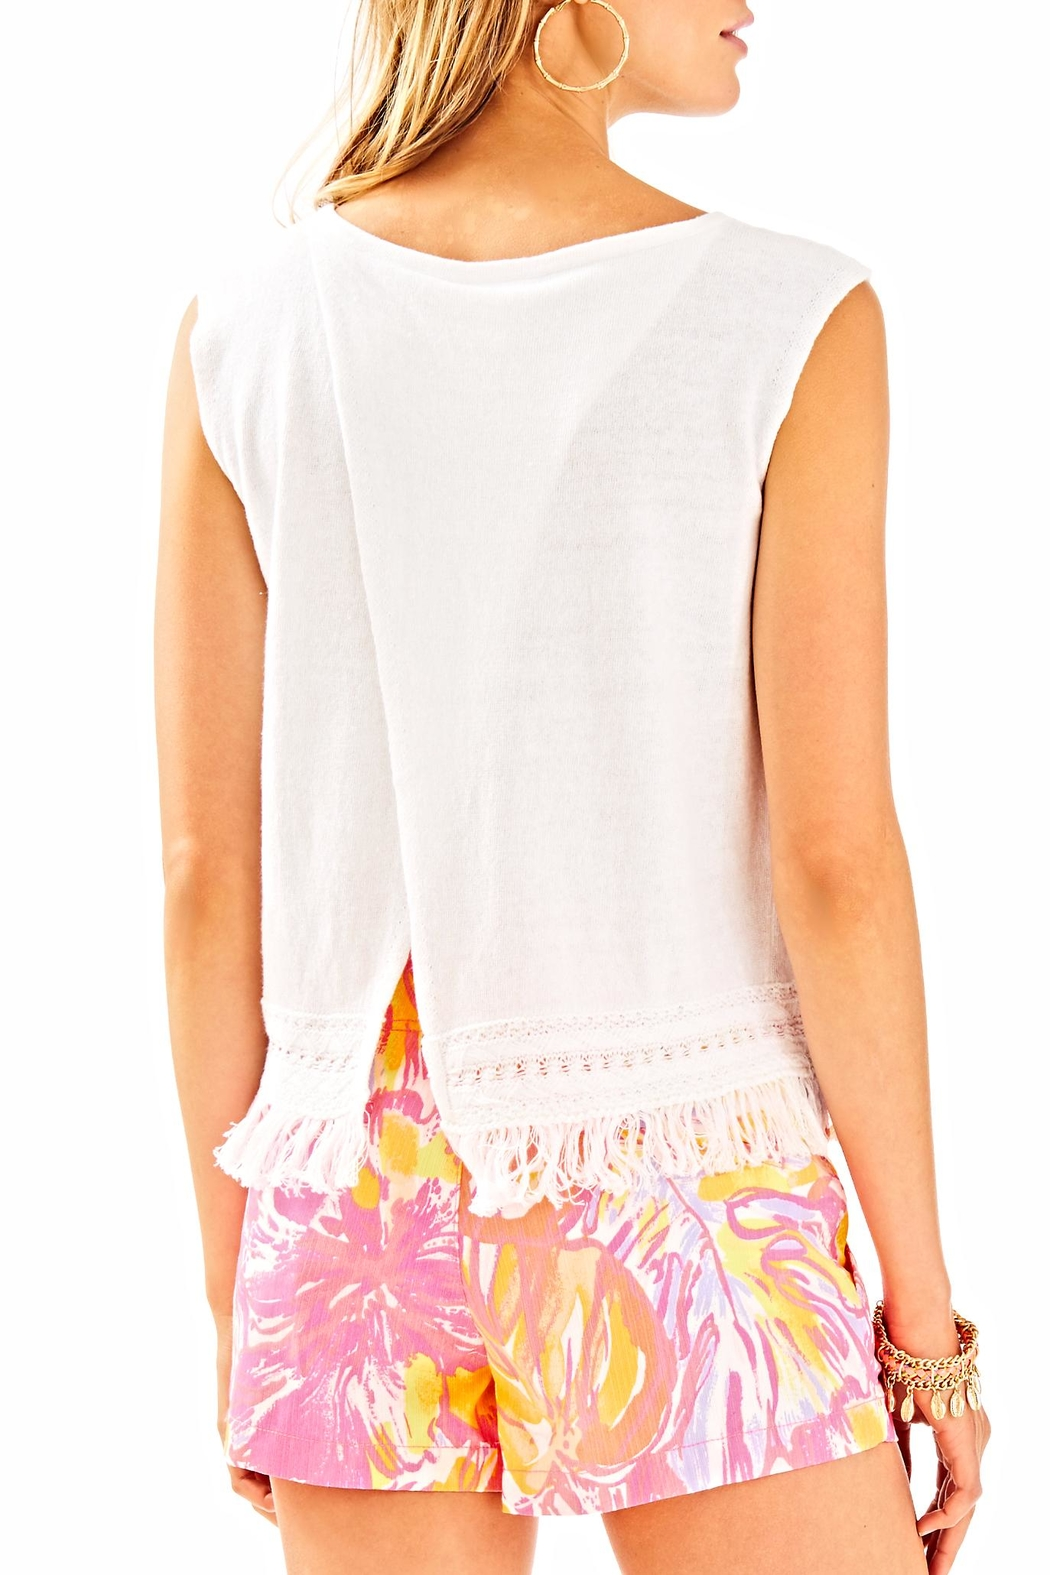 Lilly Pulitzer Edenwood Sweater Tank Top - Back Cropped Image